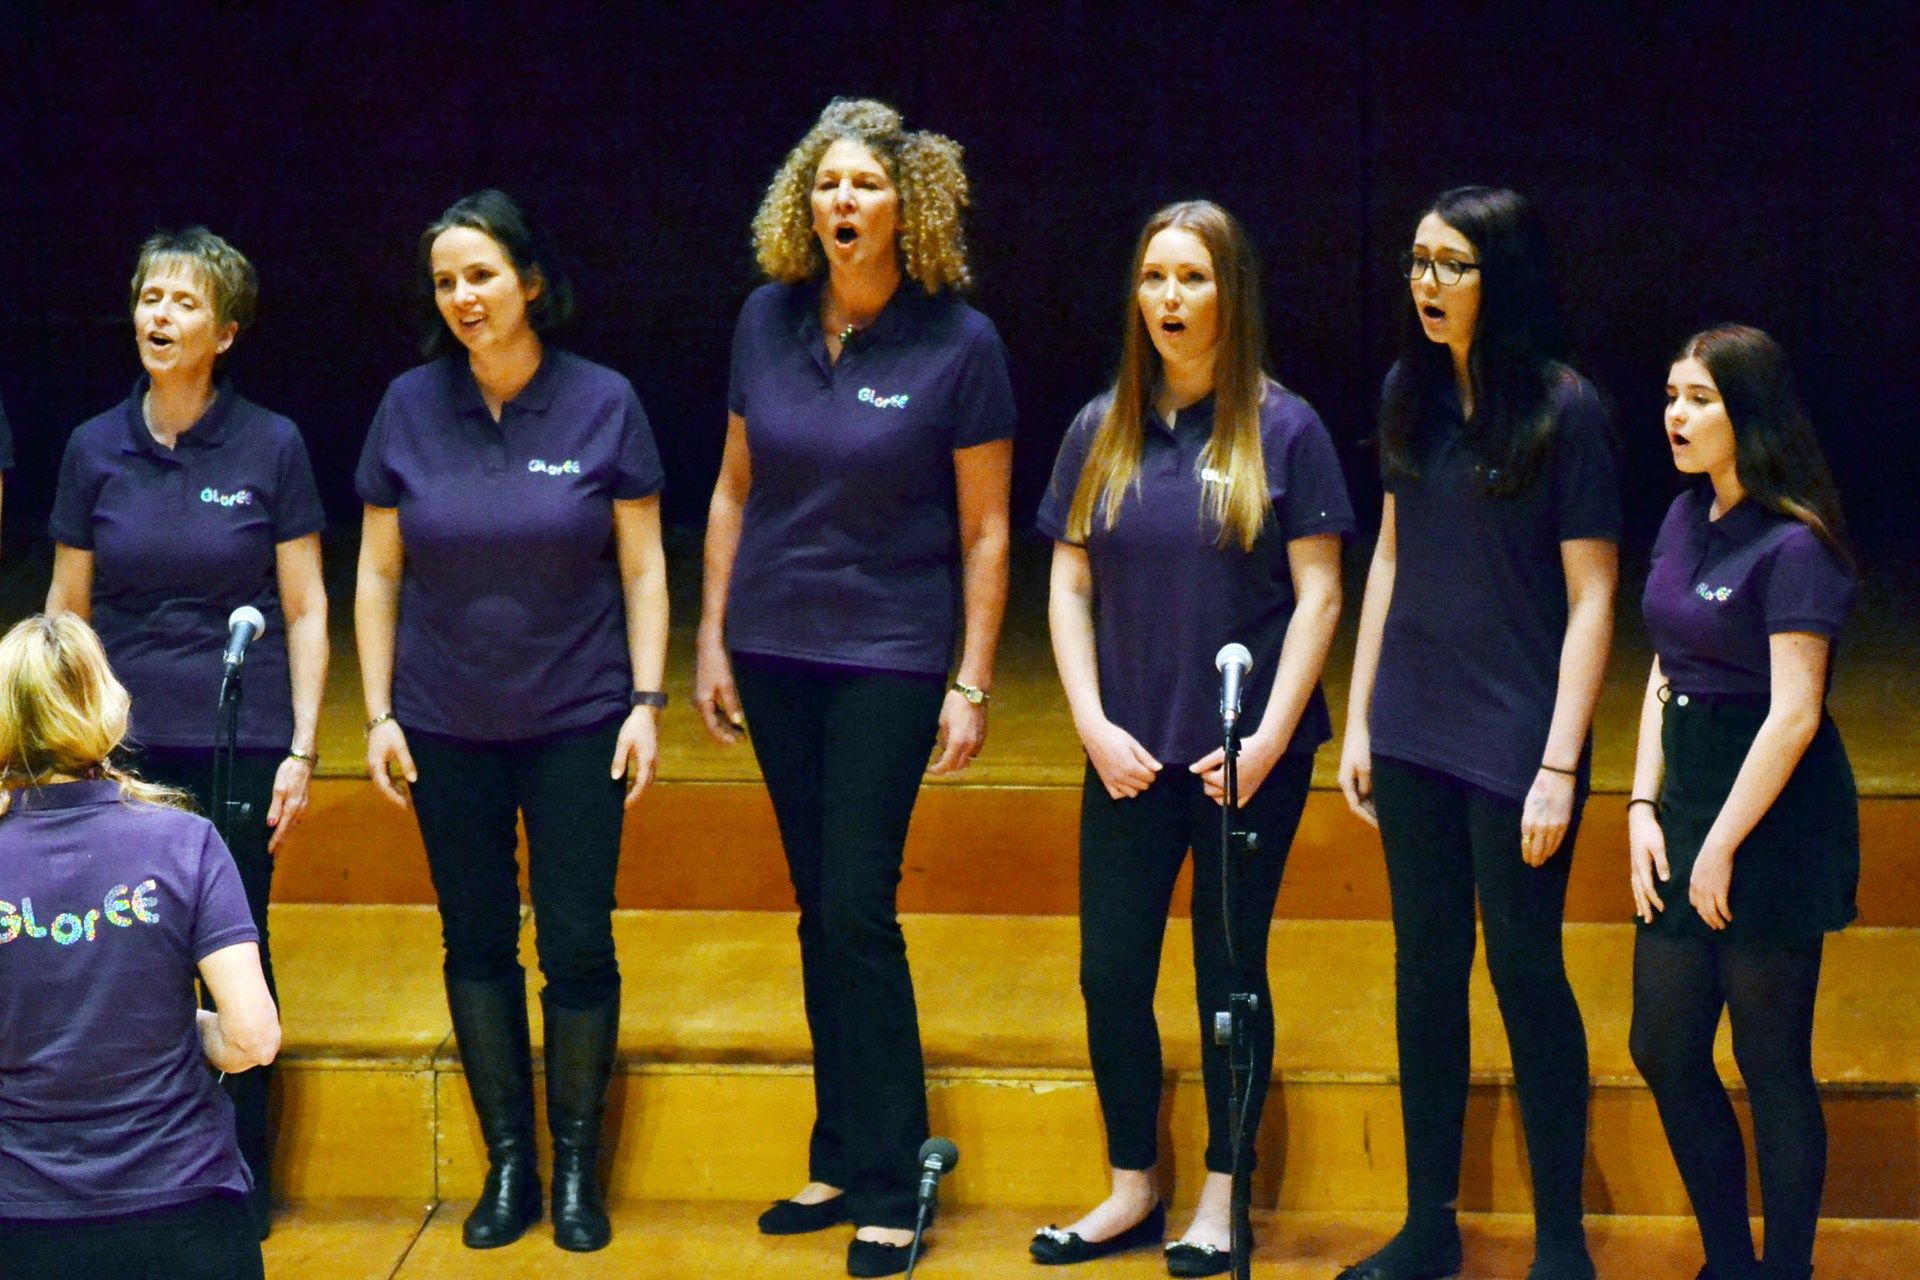 GLorEE represented St John's Church Crowthorne at the final of Let's Sing Reading Choir Competition at the Hexagon in Reading on 1st March 2017.